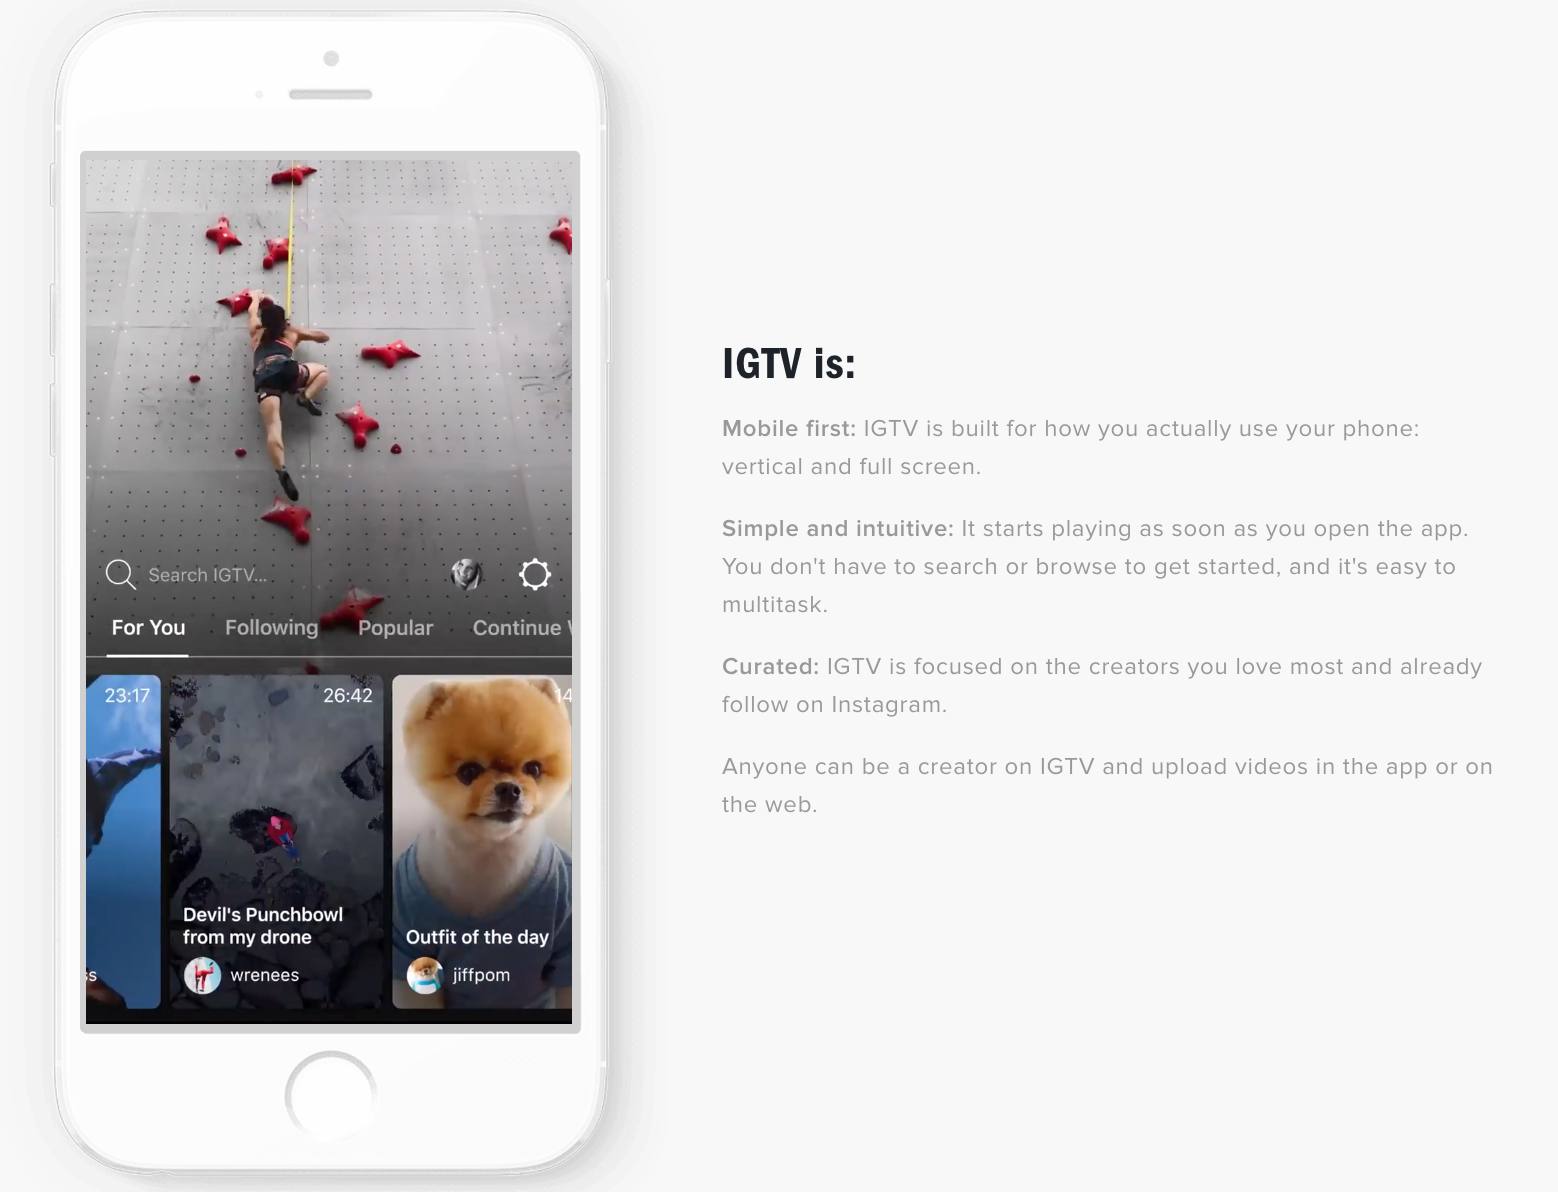 Instagram launches mobile TV feature to compete with YouTube